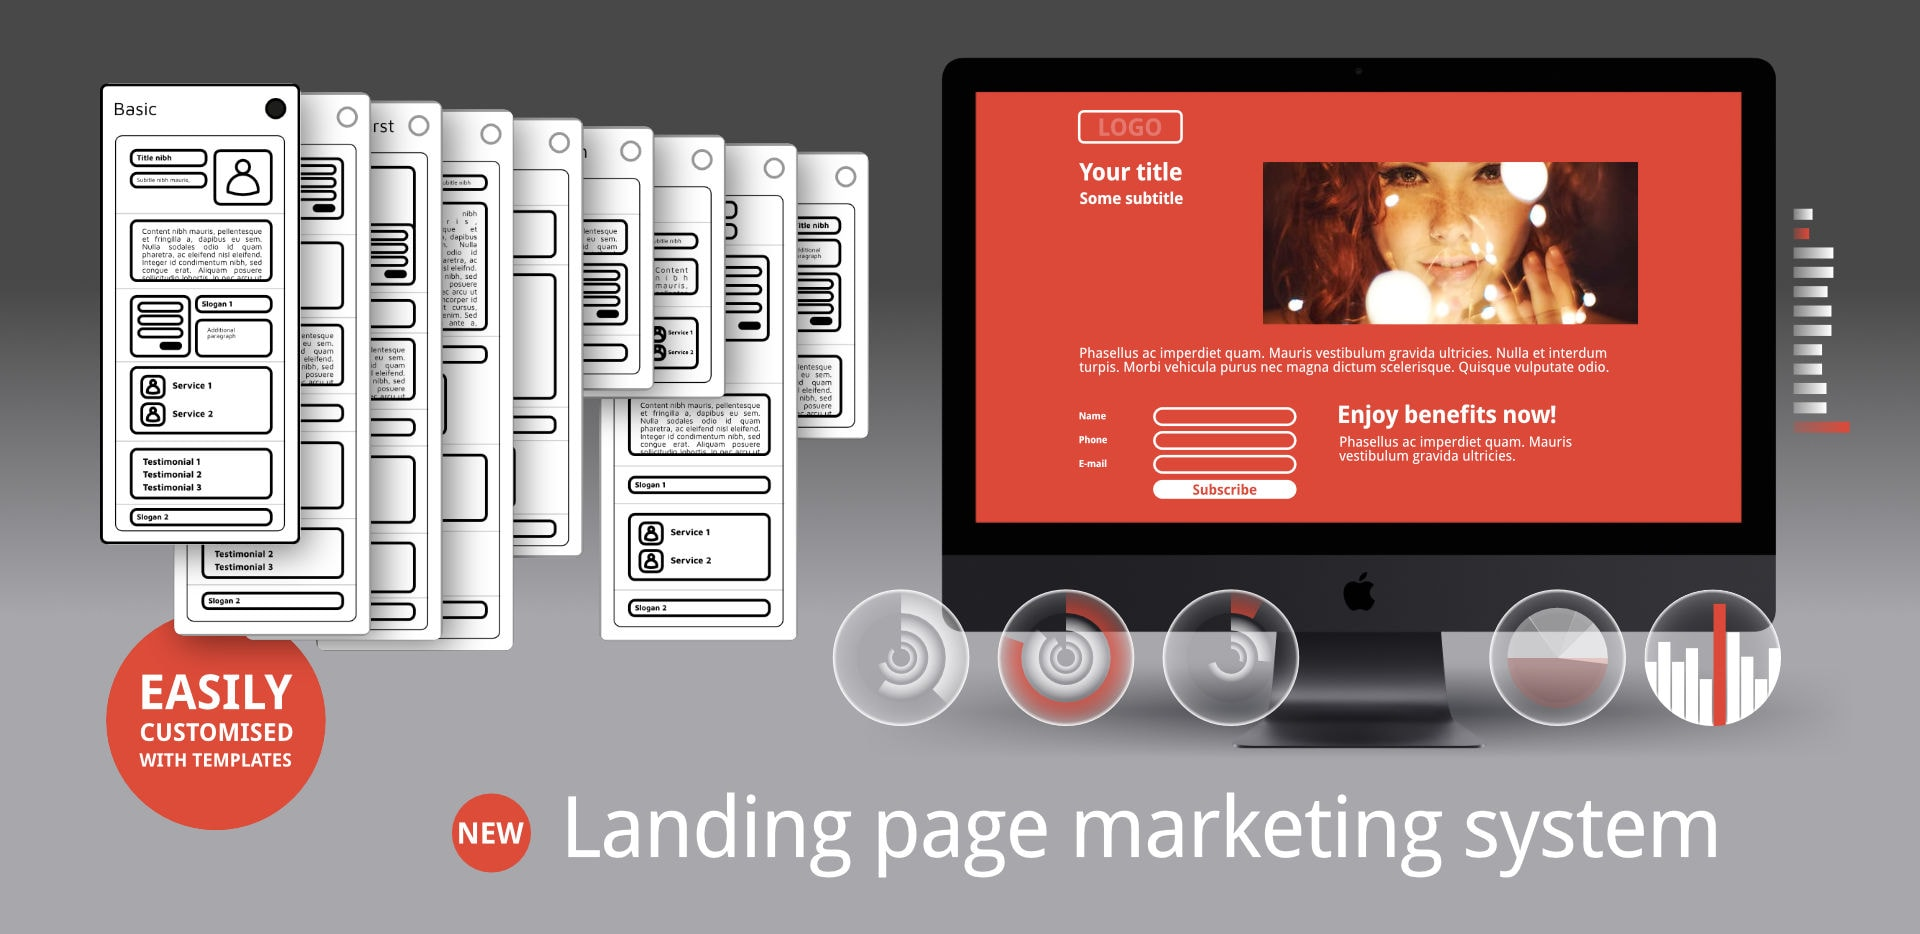 Landing page marketing system